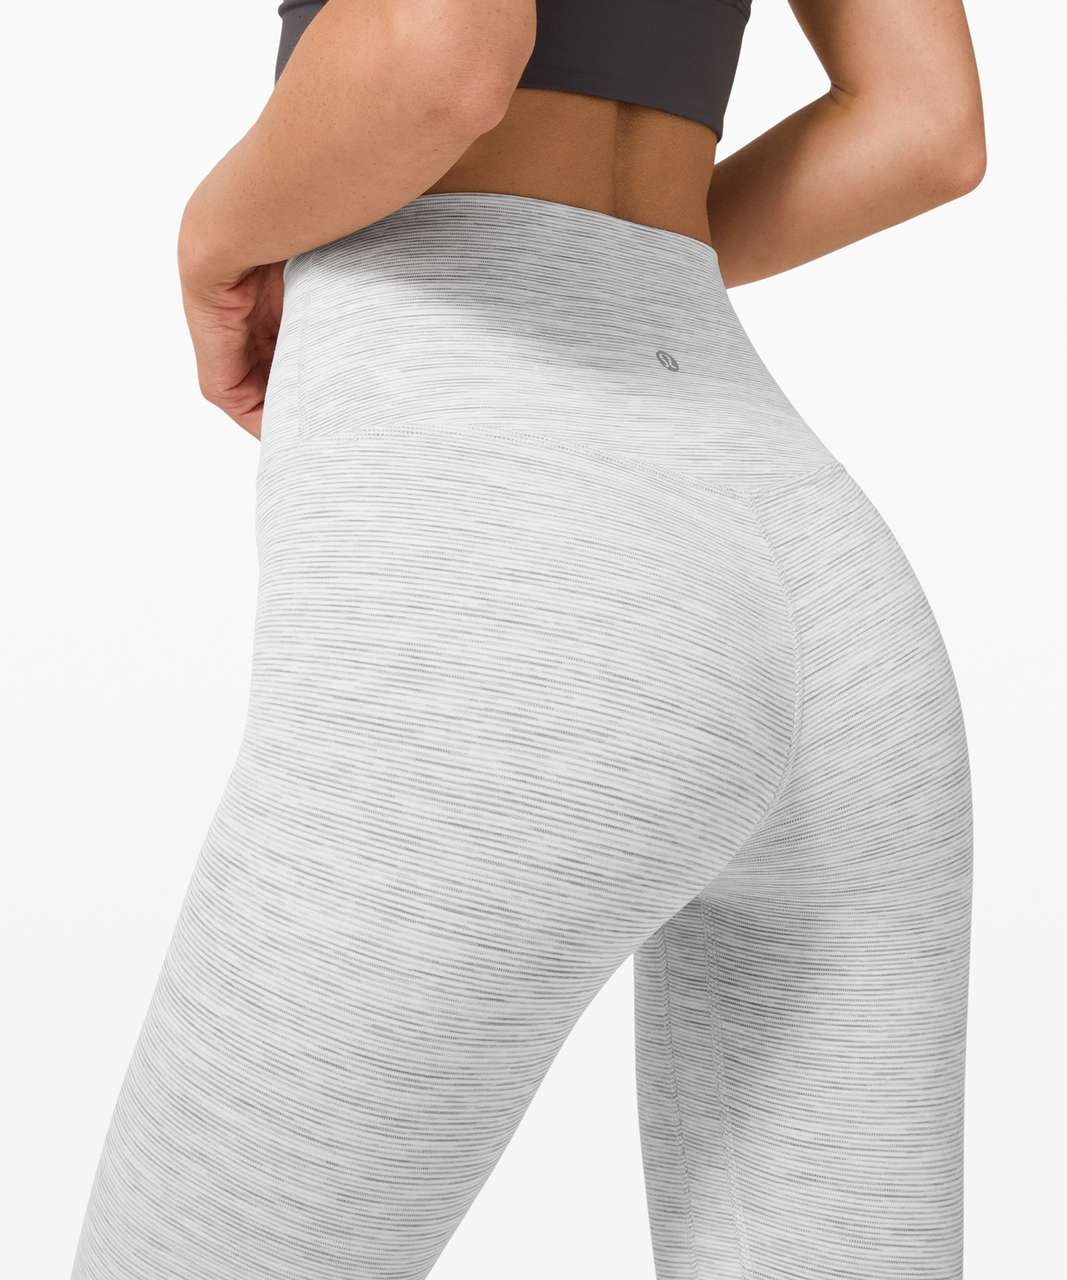 "Lululemon Align Pant II 25"" - Wee Are From Space Nimbus Battleship"